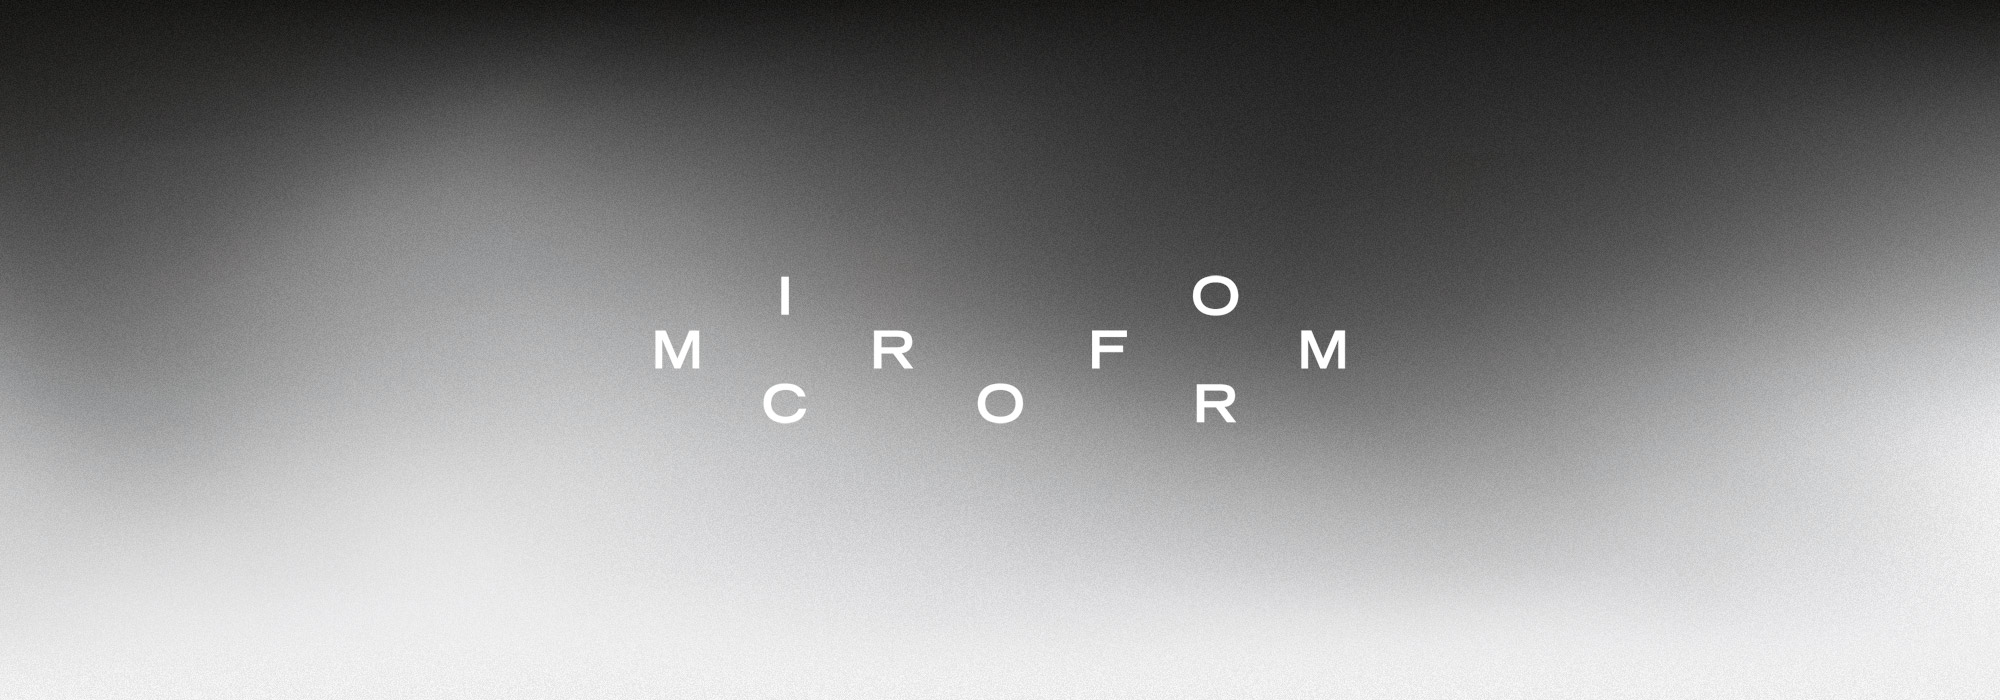 microform Podcast